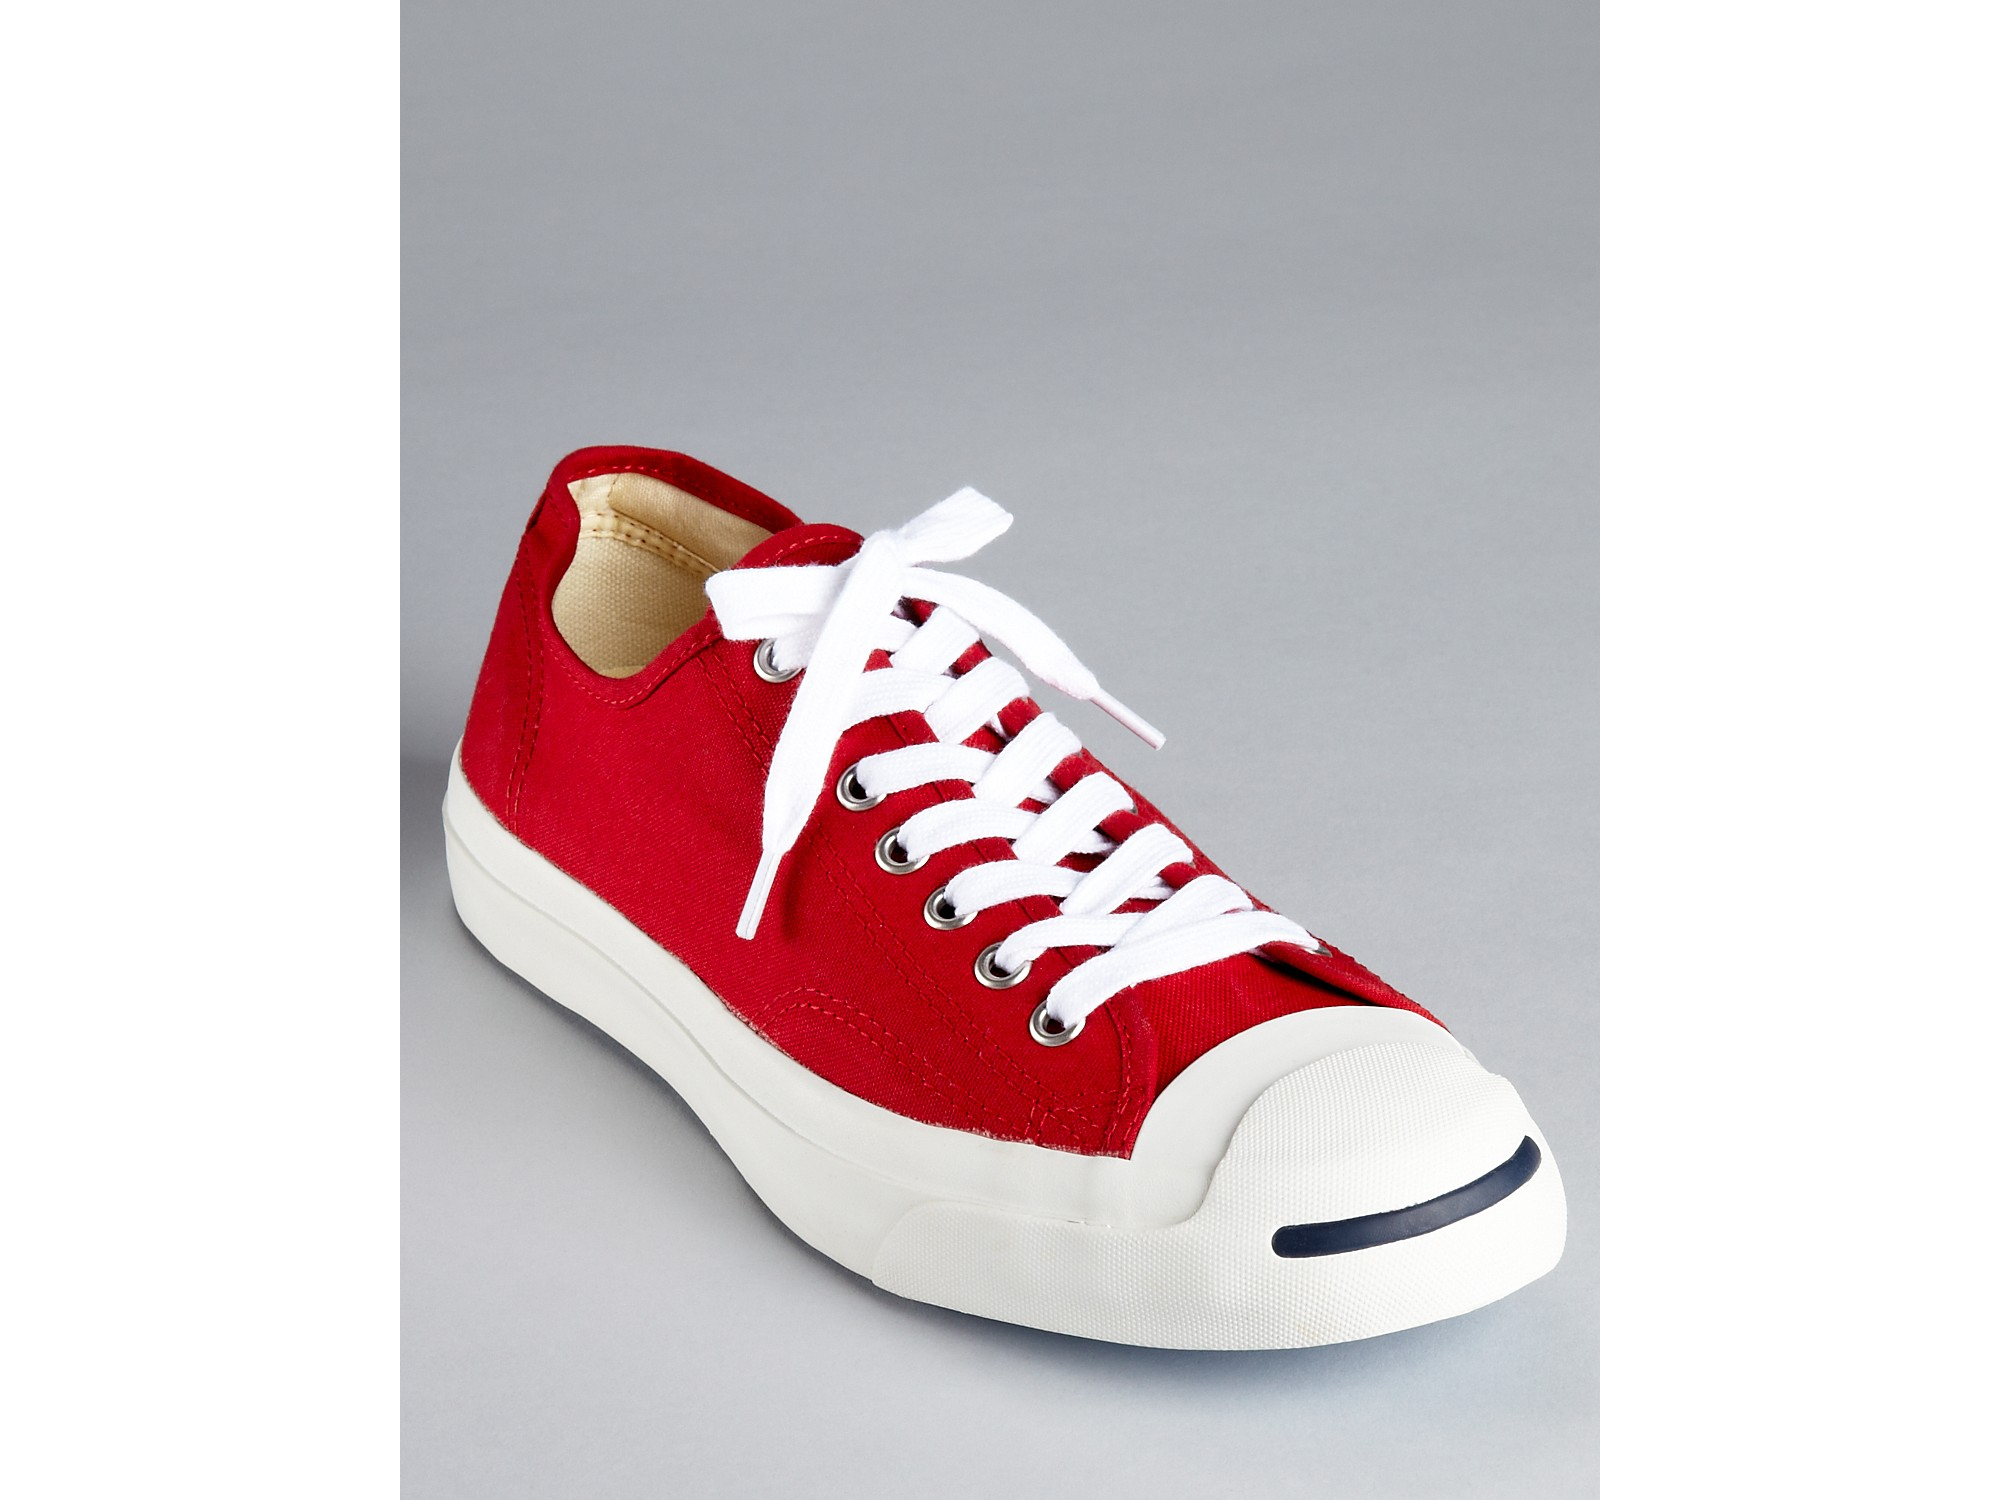 b53b482e0053c7 ... cheapest lyst converse jack purcell ltt sneakers in red for men 87335  36321